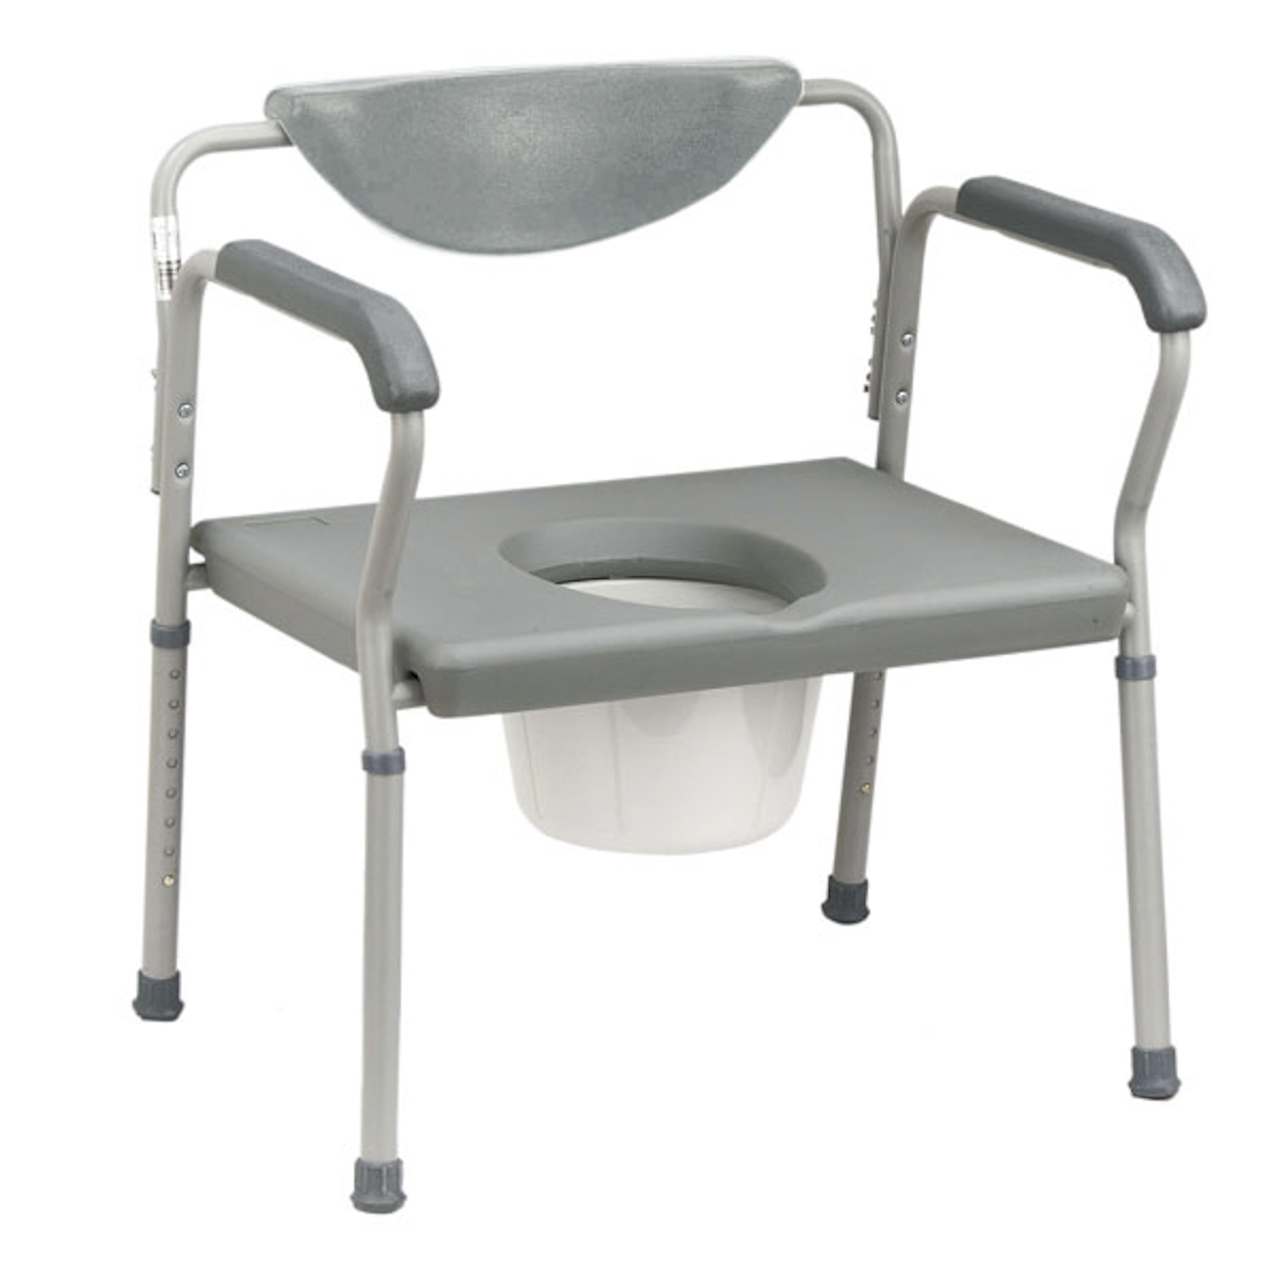 mycarehomemedical-bariatric-commode.jpg